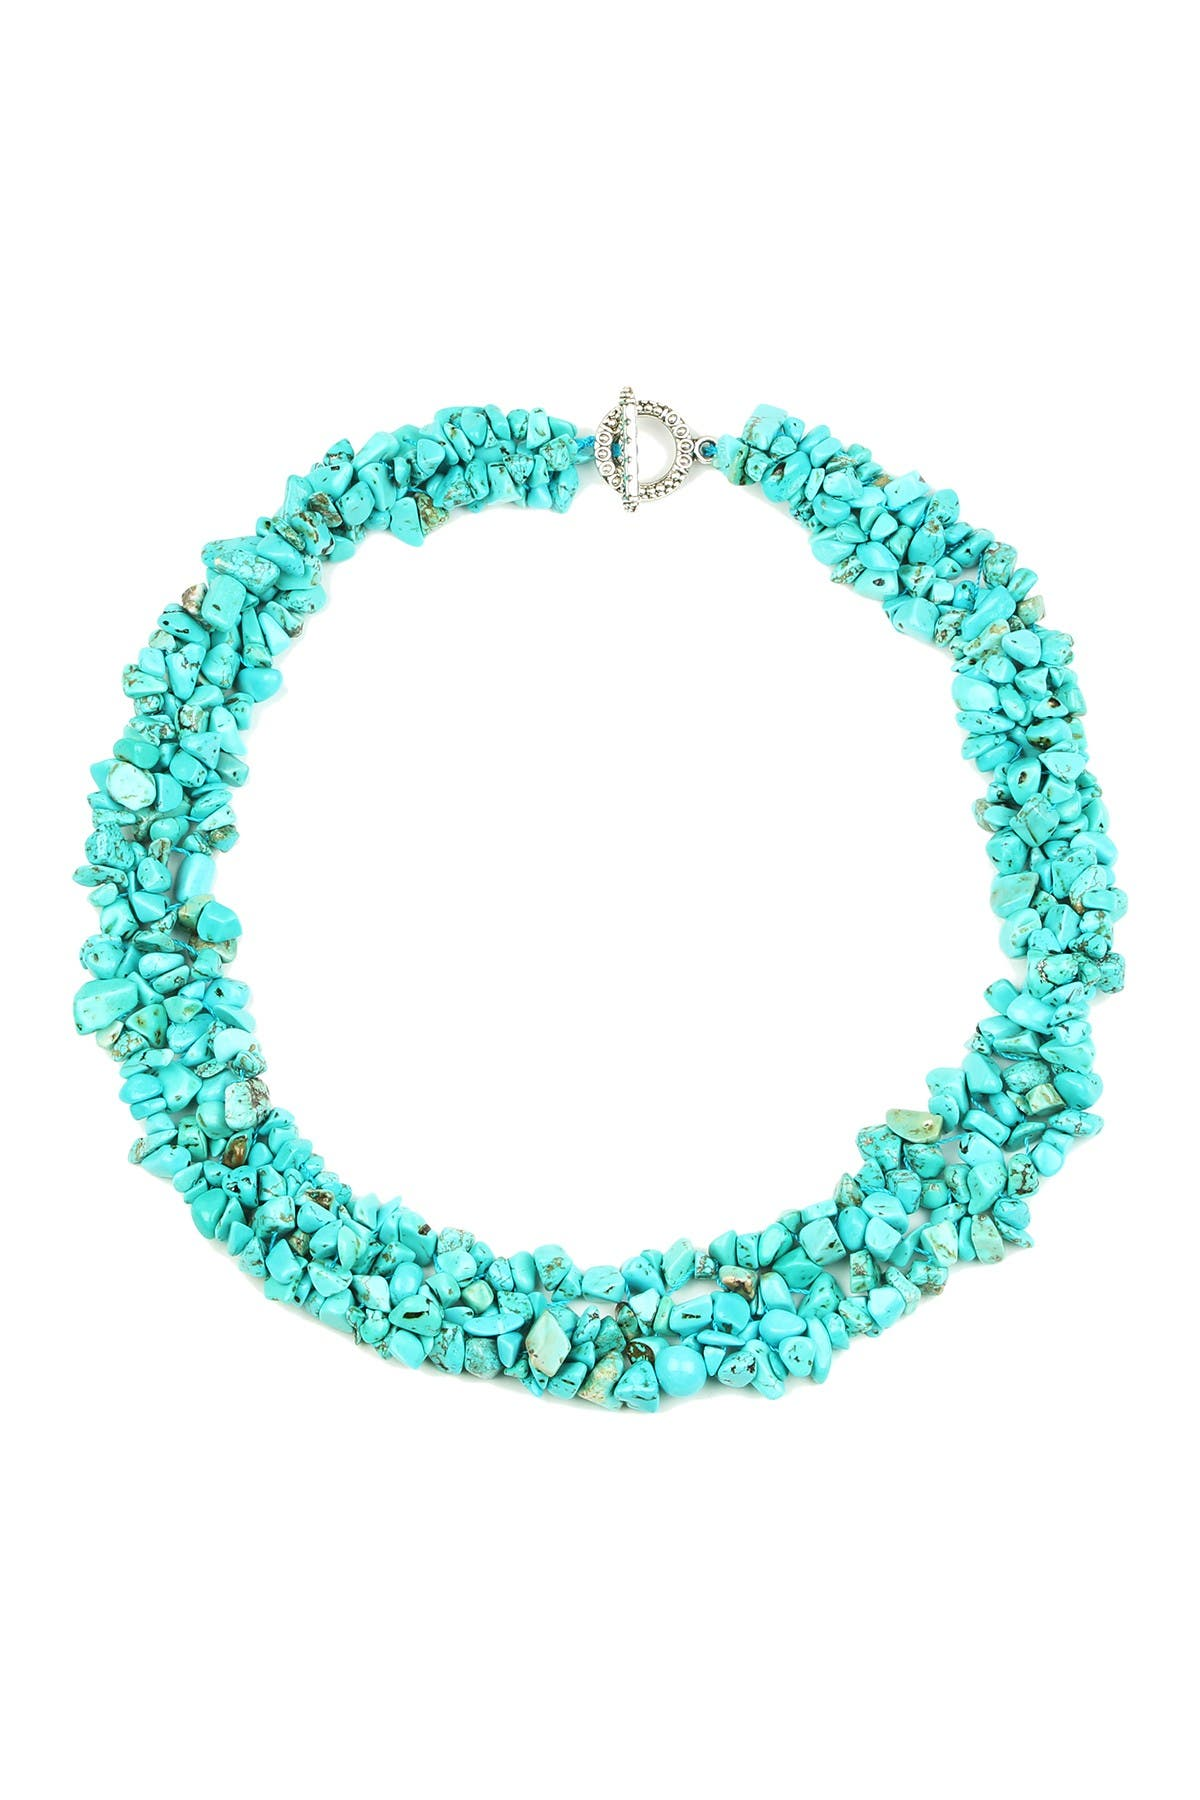 Image of Eye Candy Los Angeles Turquoise Collar Necklace